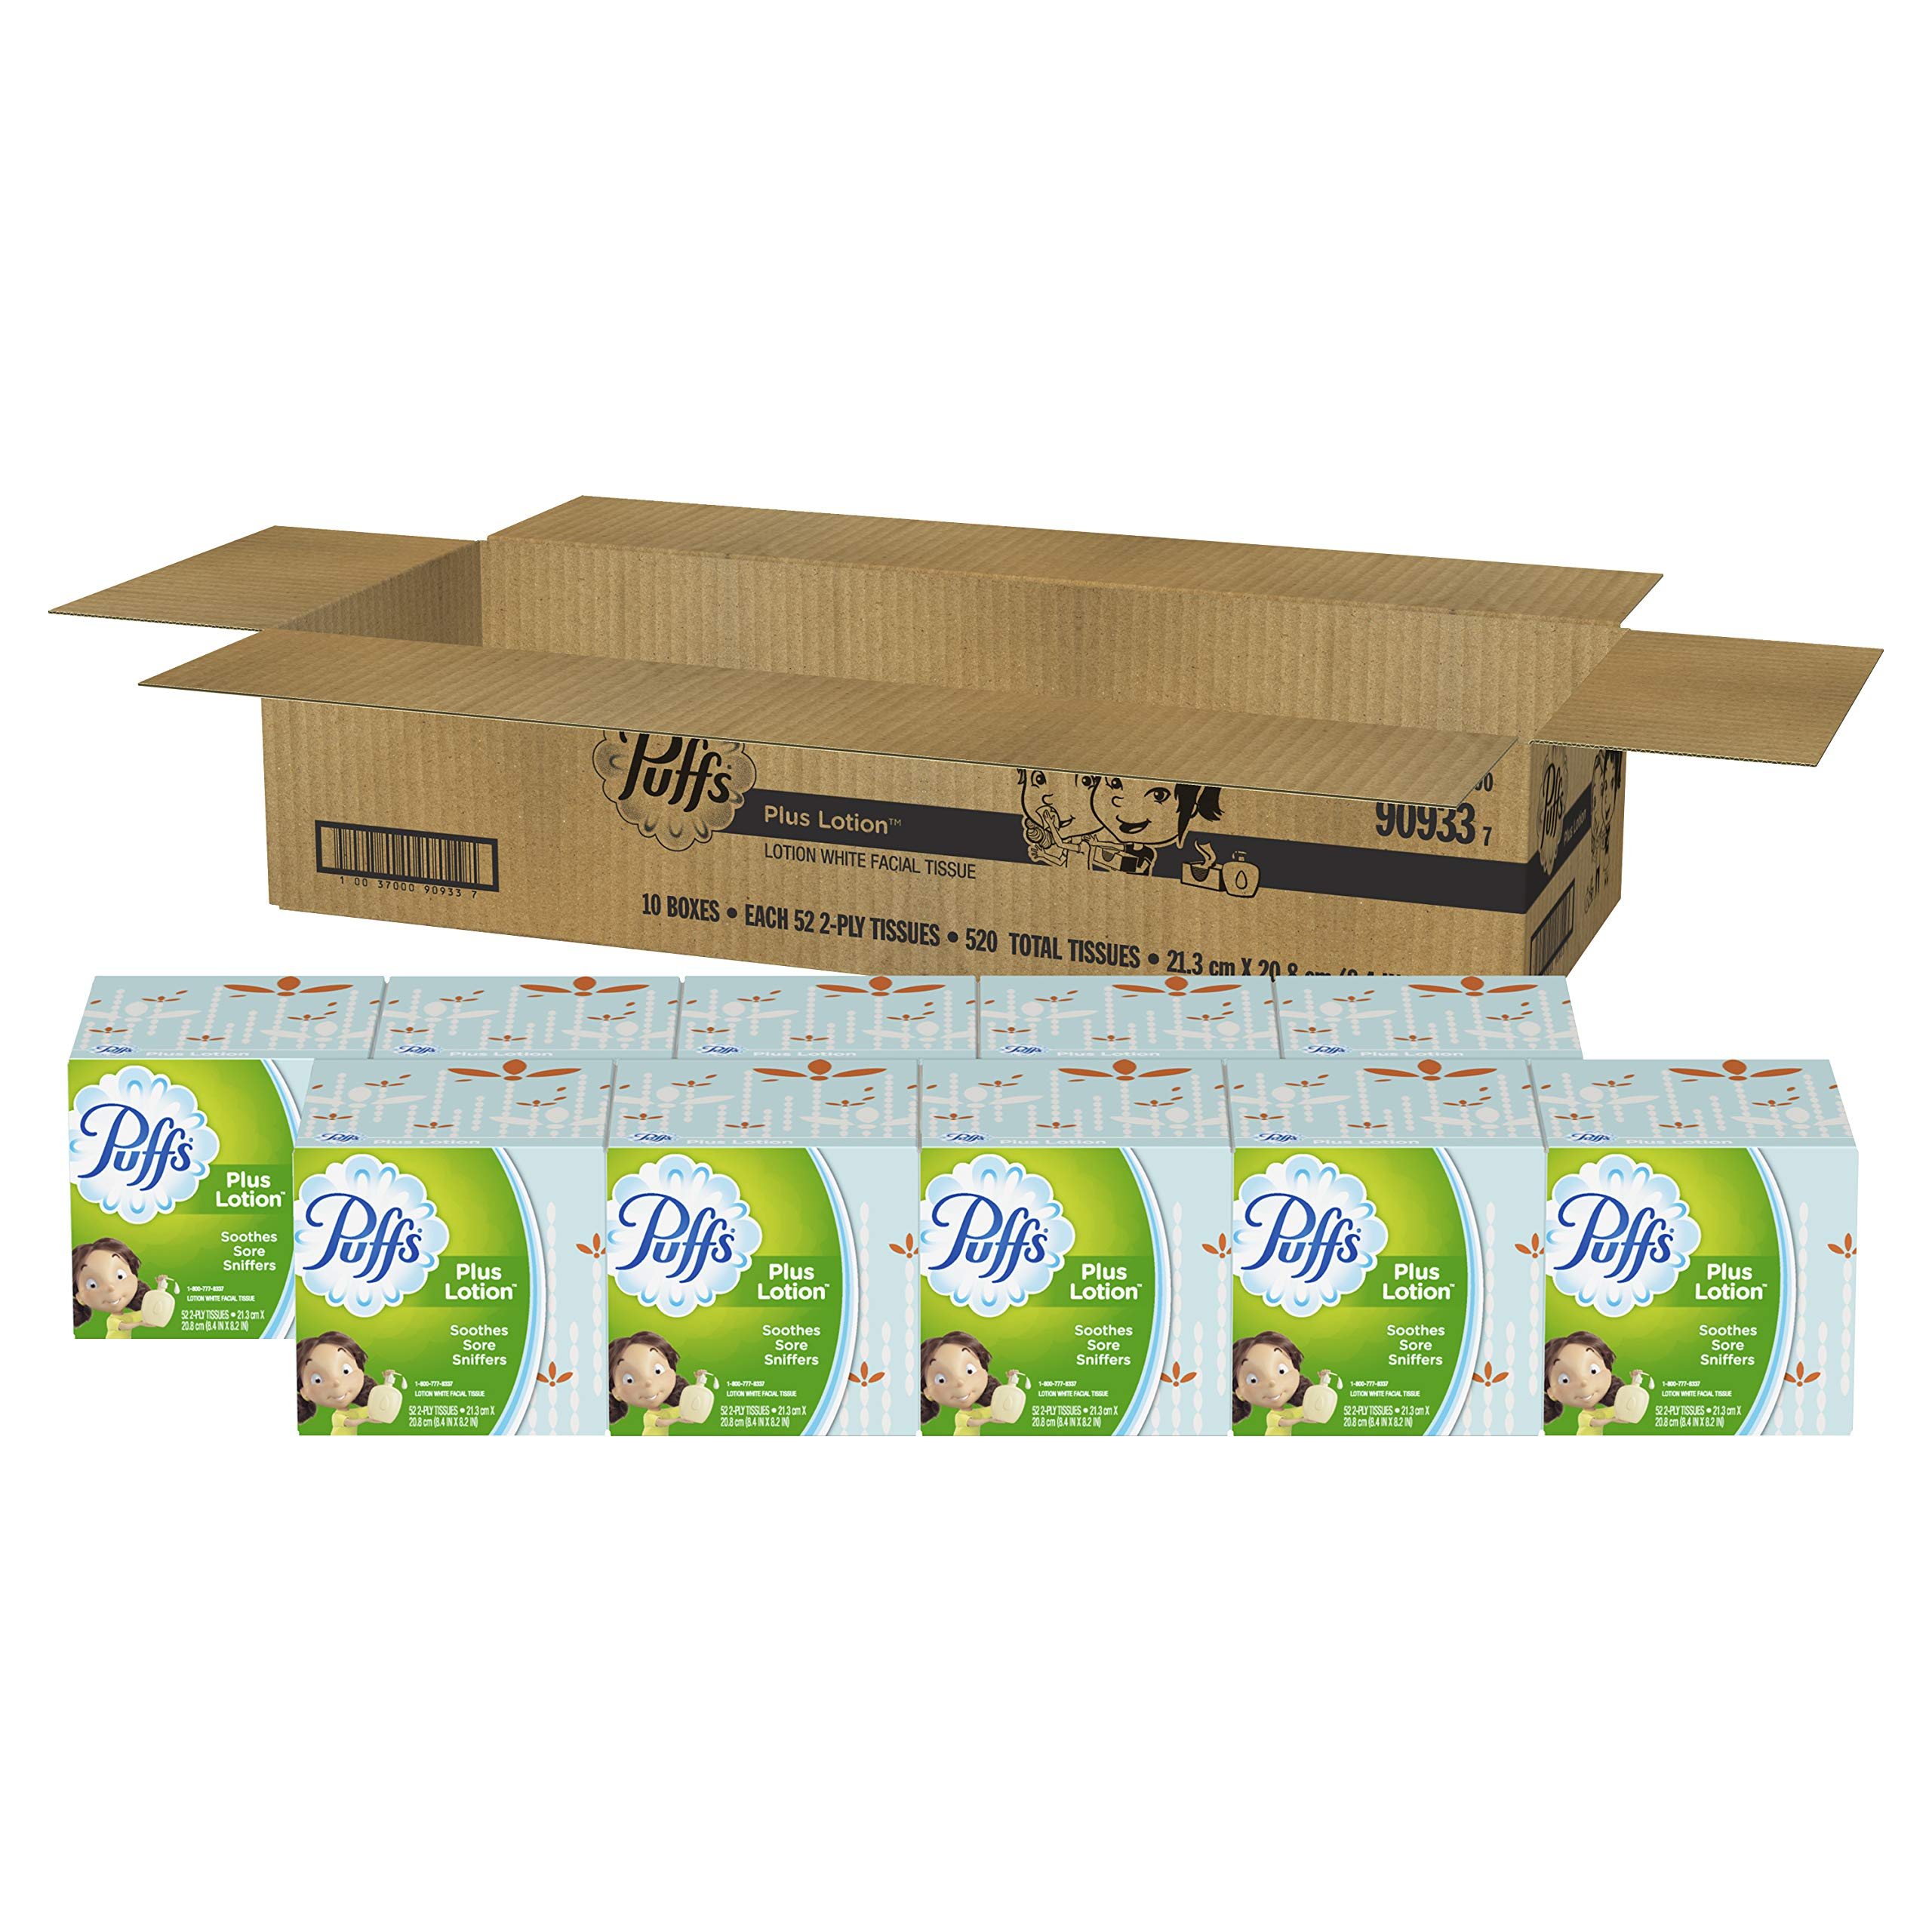 Puffs Plus Lotion Facial Tissues, 10 Cubes, 52 Tissues per Cube by Puffs (Image #2)